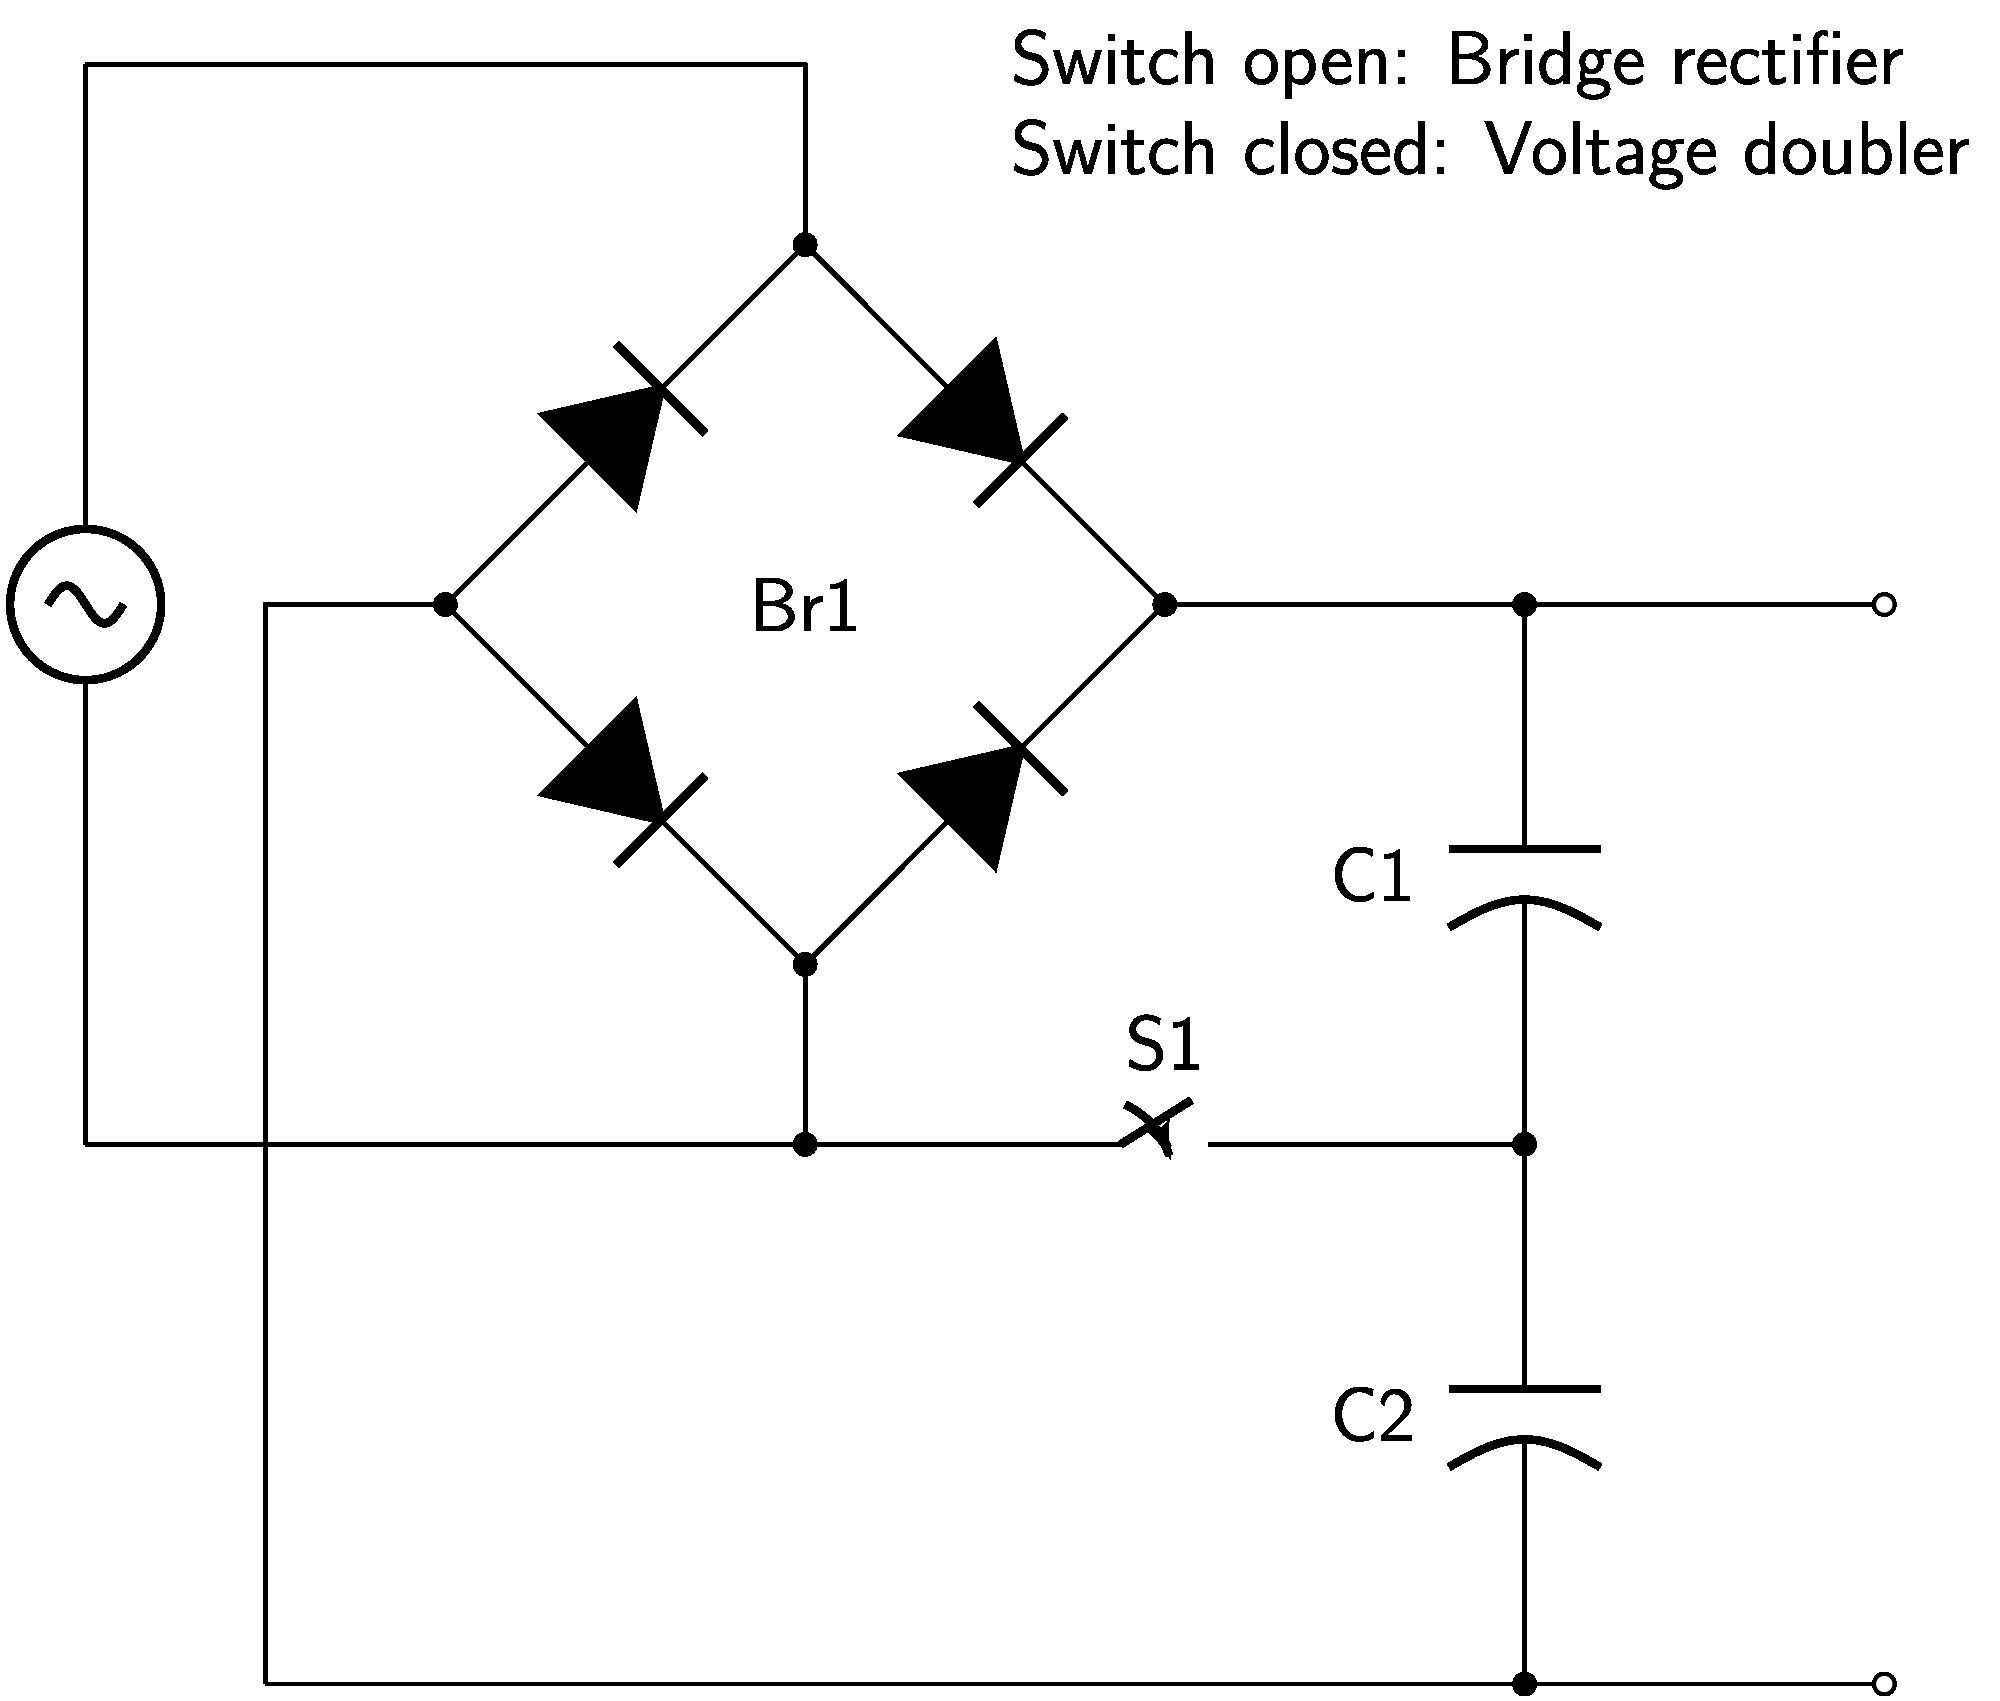 way bridge rectifier wiring diagram components tube unusual kbpc3510 inside wiring diagram bridge rectifier [ 2000 x 1701 Pixel ]